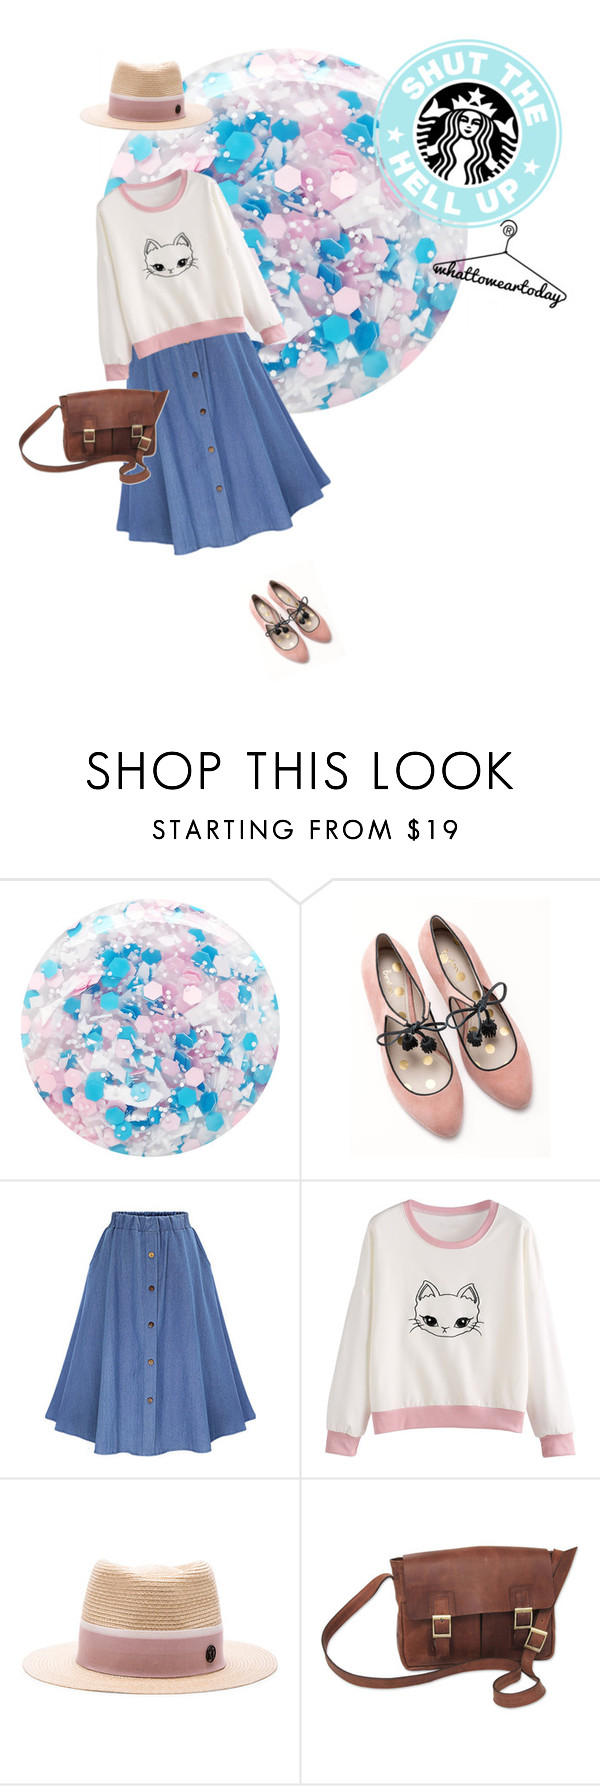 """""""better late than..."""" by ghmahi ❤ liked on Polyvore featuring Nails Inc., Boden, Maison Michel and NOVICA"""